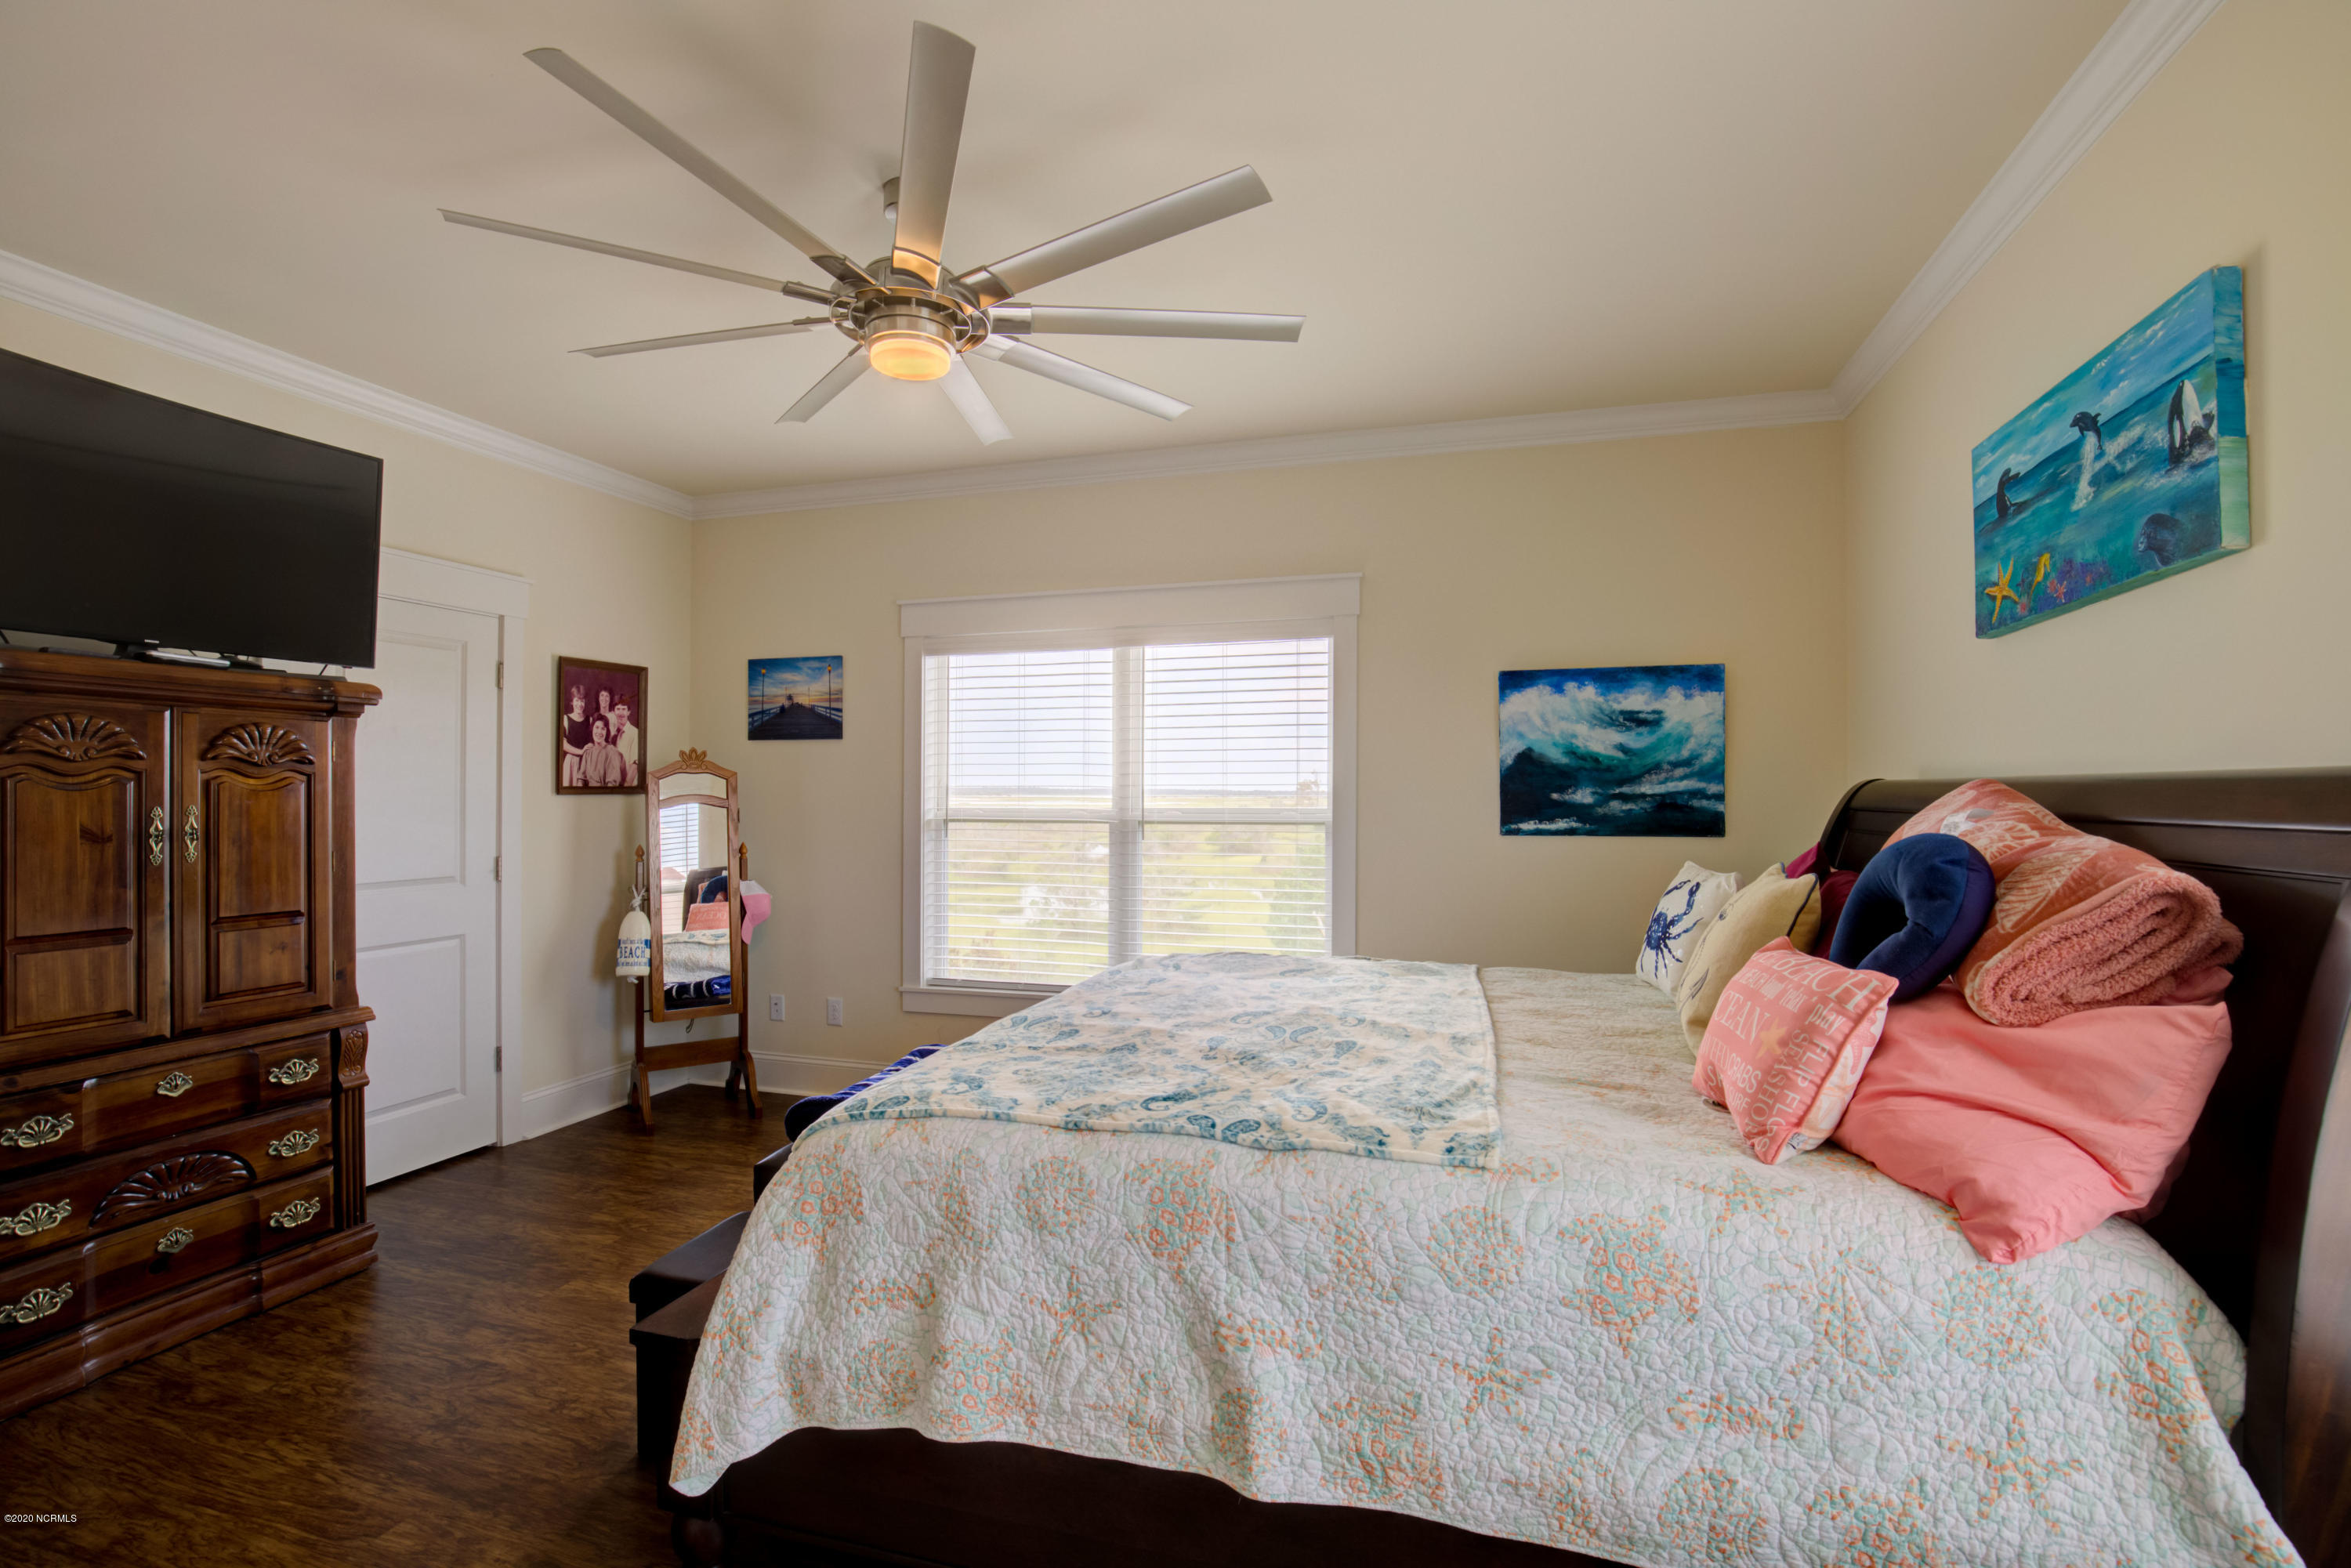 104 Grant Drive, North Topsail Beach, North Carolina 28460, 3 Bedrooms Bedrooms, 5 Rooms Rooms,2 BathroomsBathrooms,Single family residence,For sale,Grant,100231006